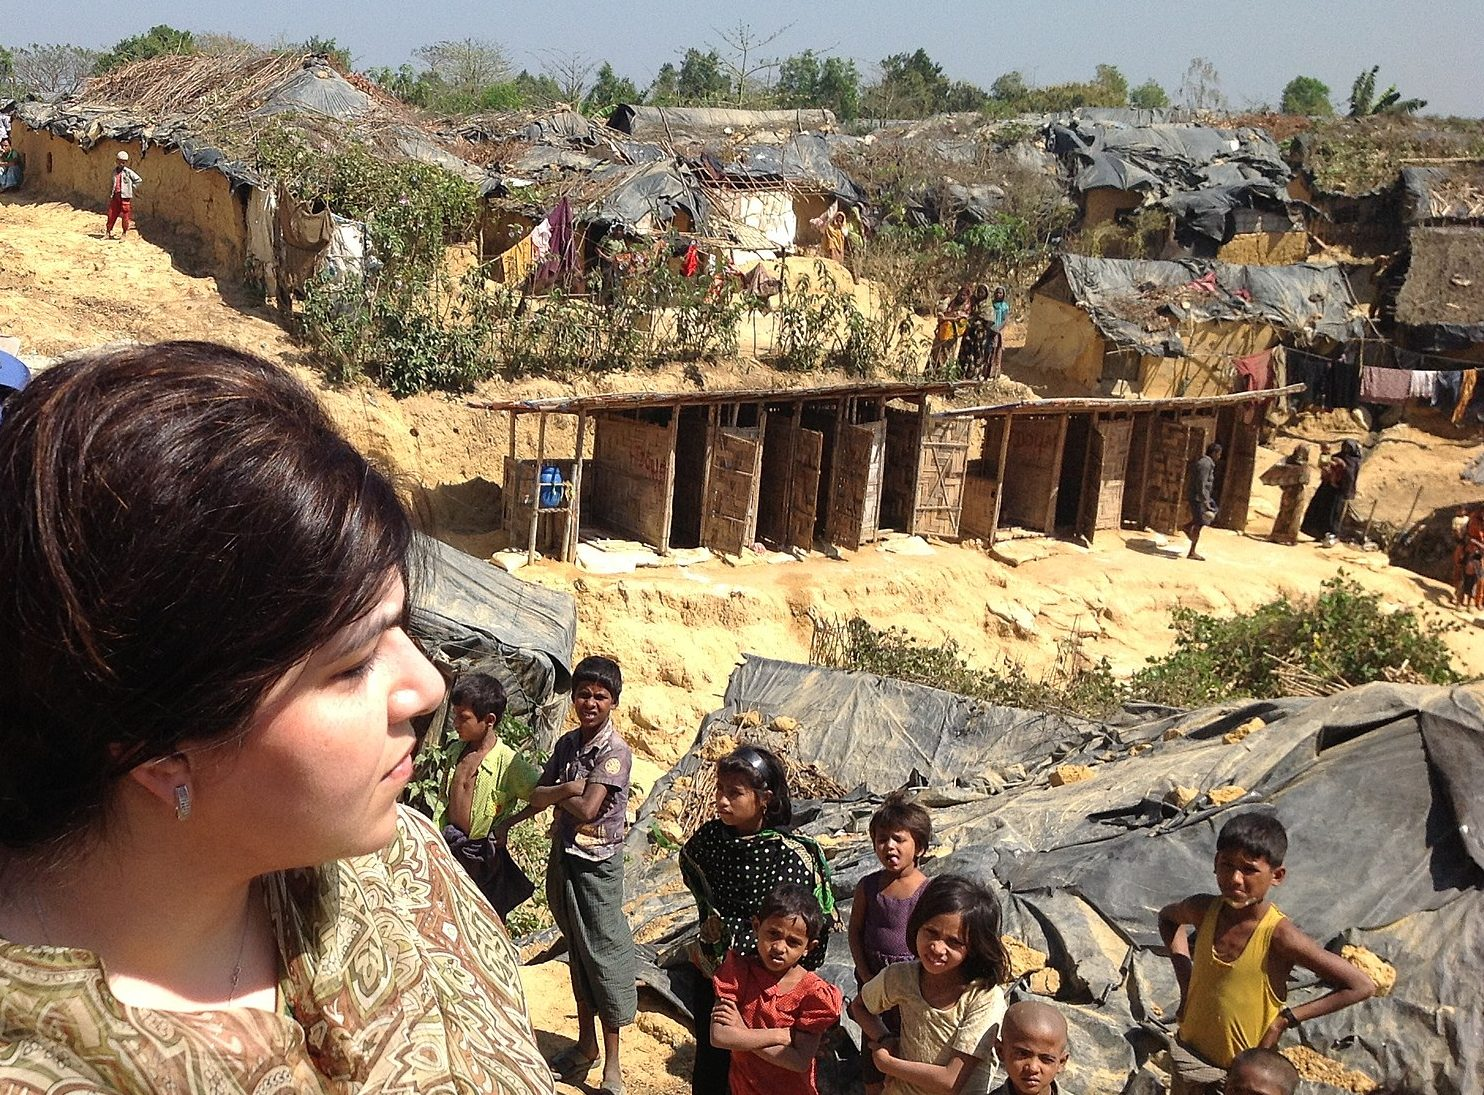 Destructive fire could send more Rohingya to Bhasan Char